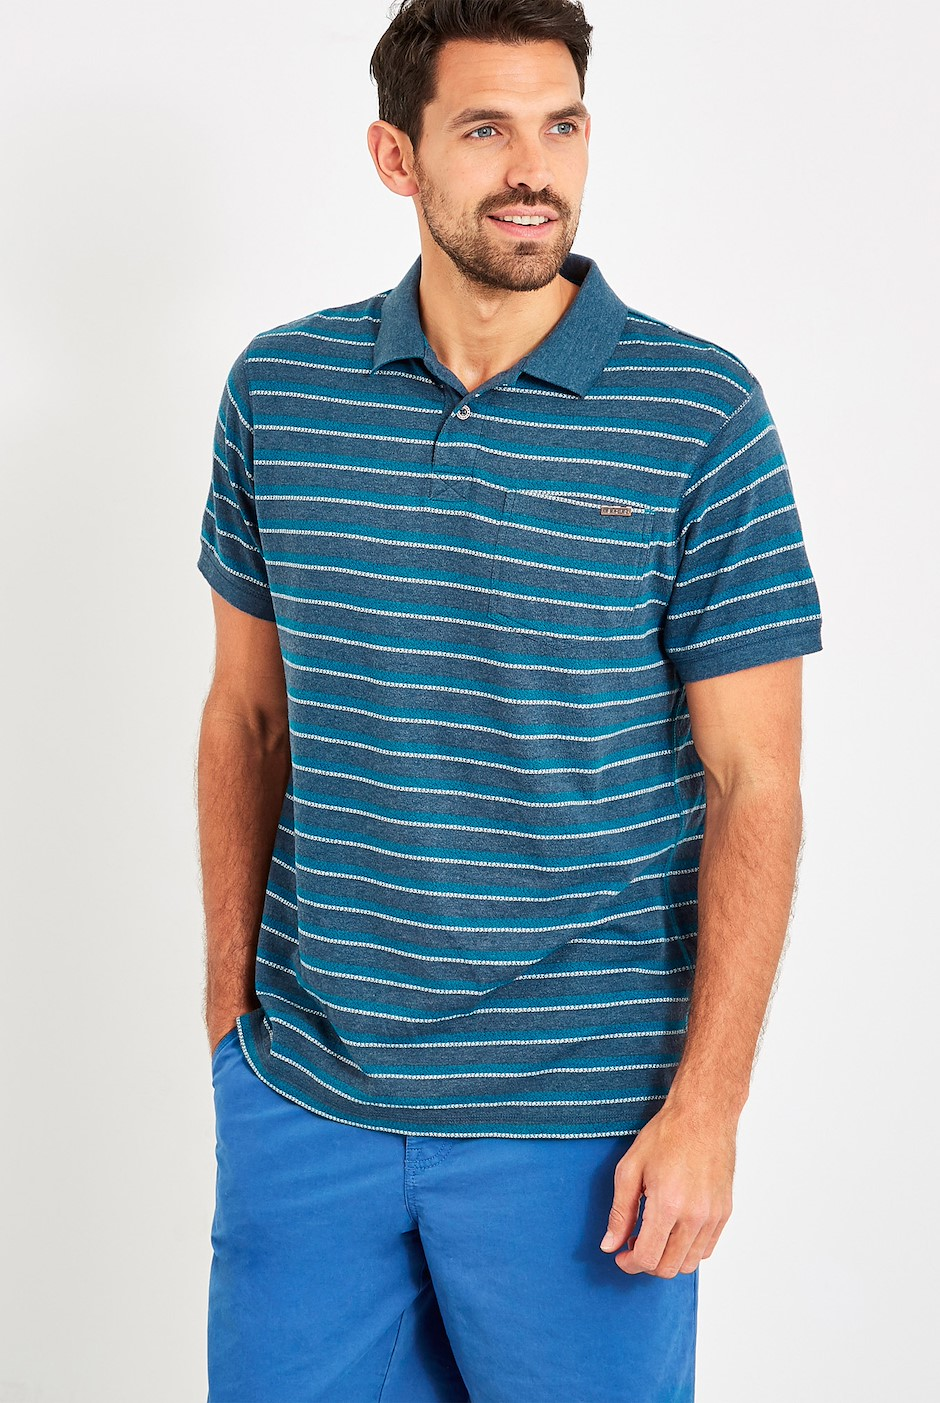 Willer Striped Polo Shirt Dusty Teal